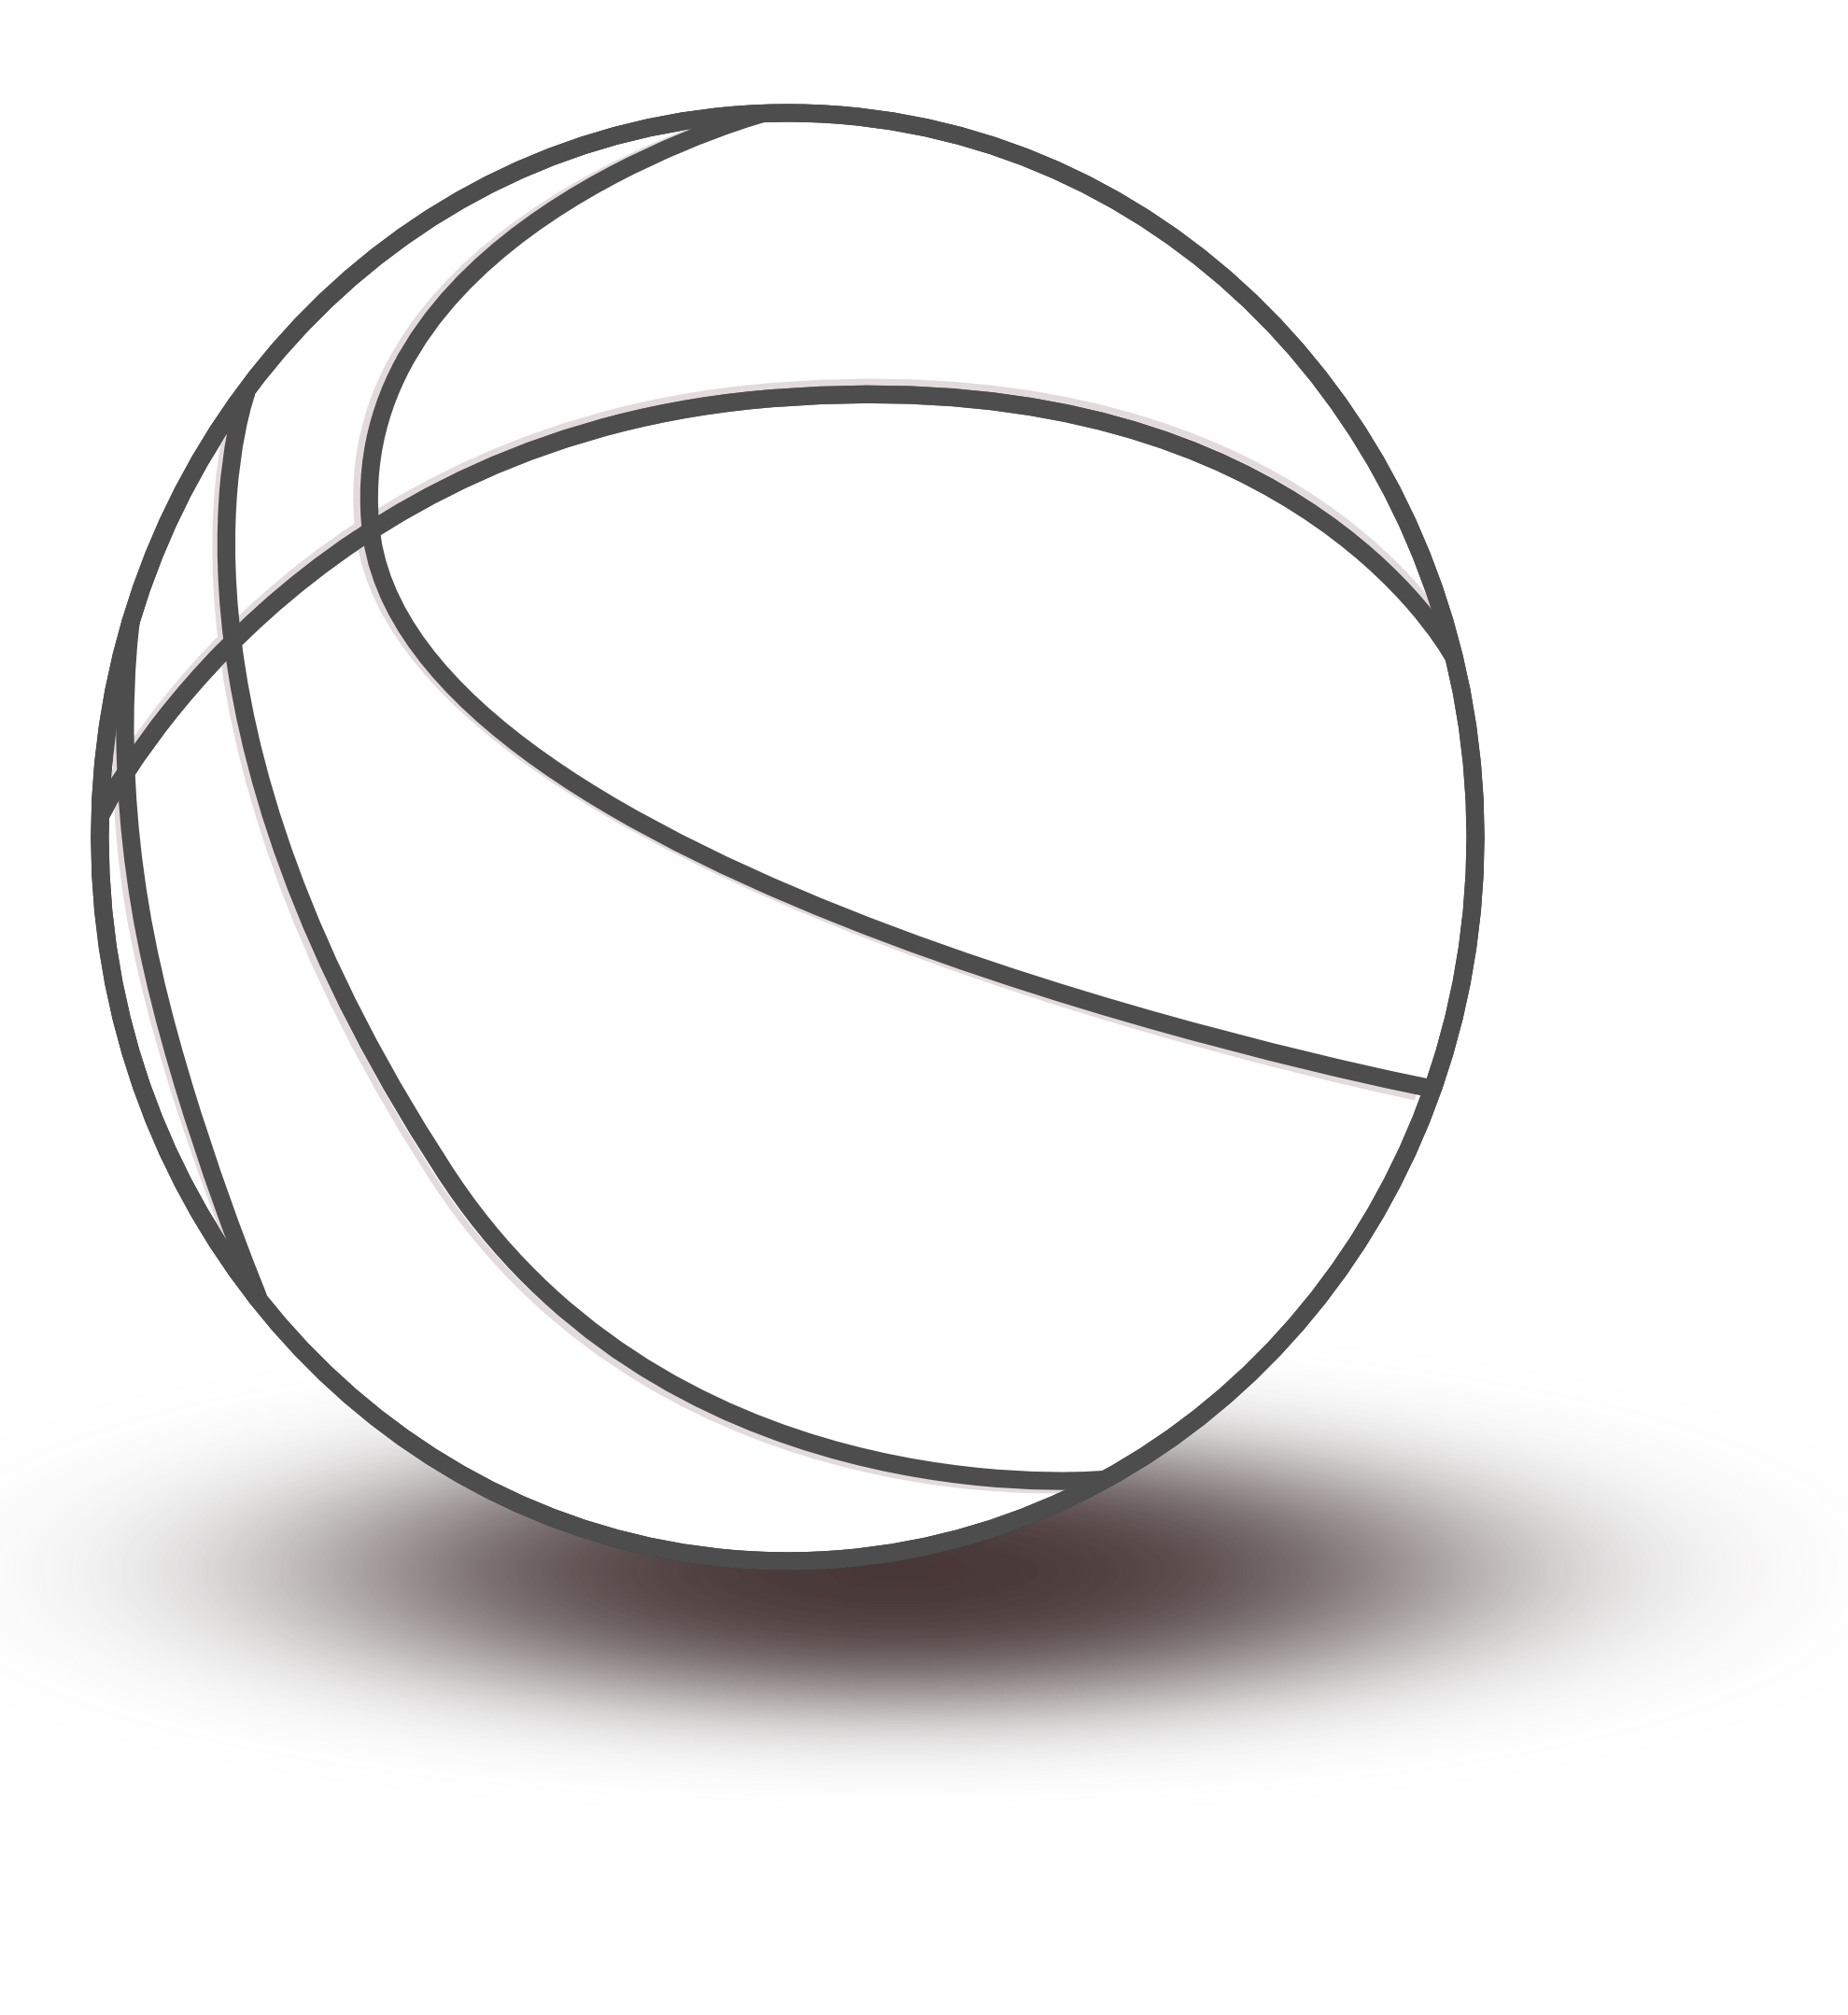 Basketball Black And White Clipart - ClipArt Best